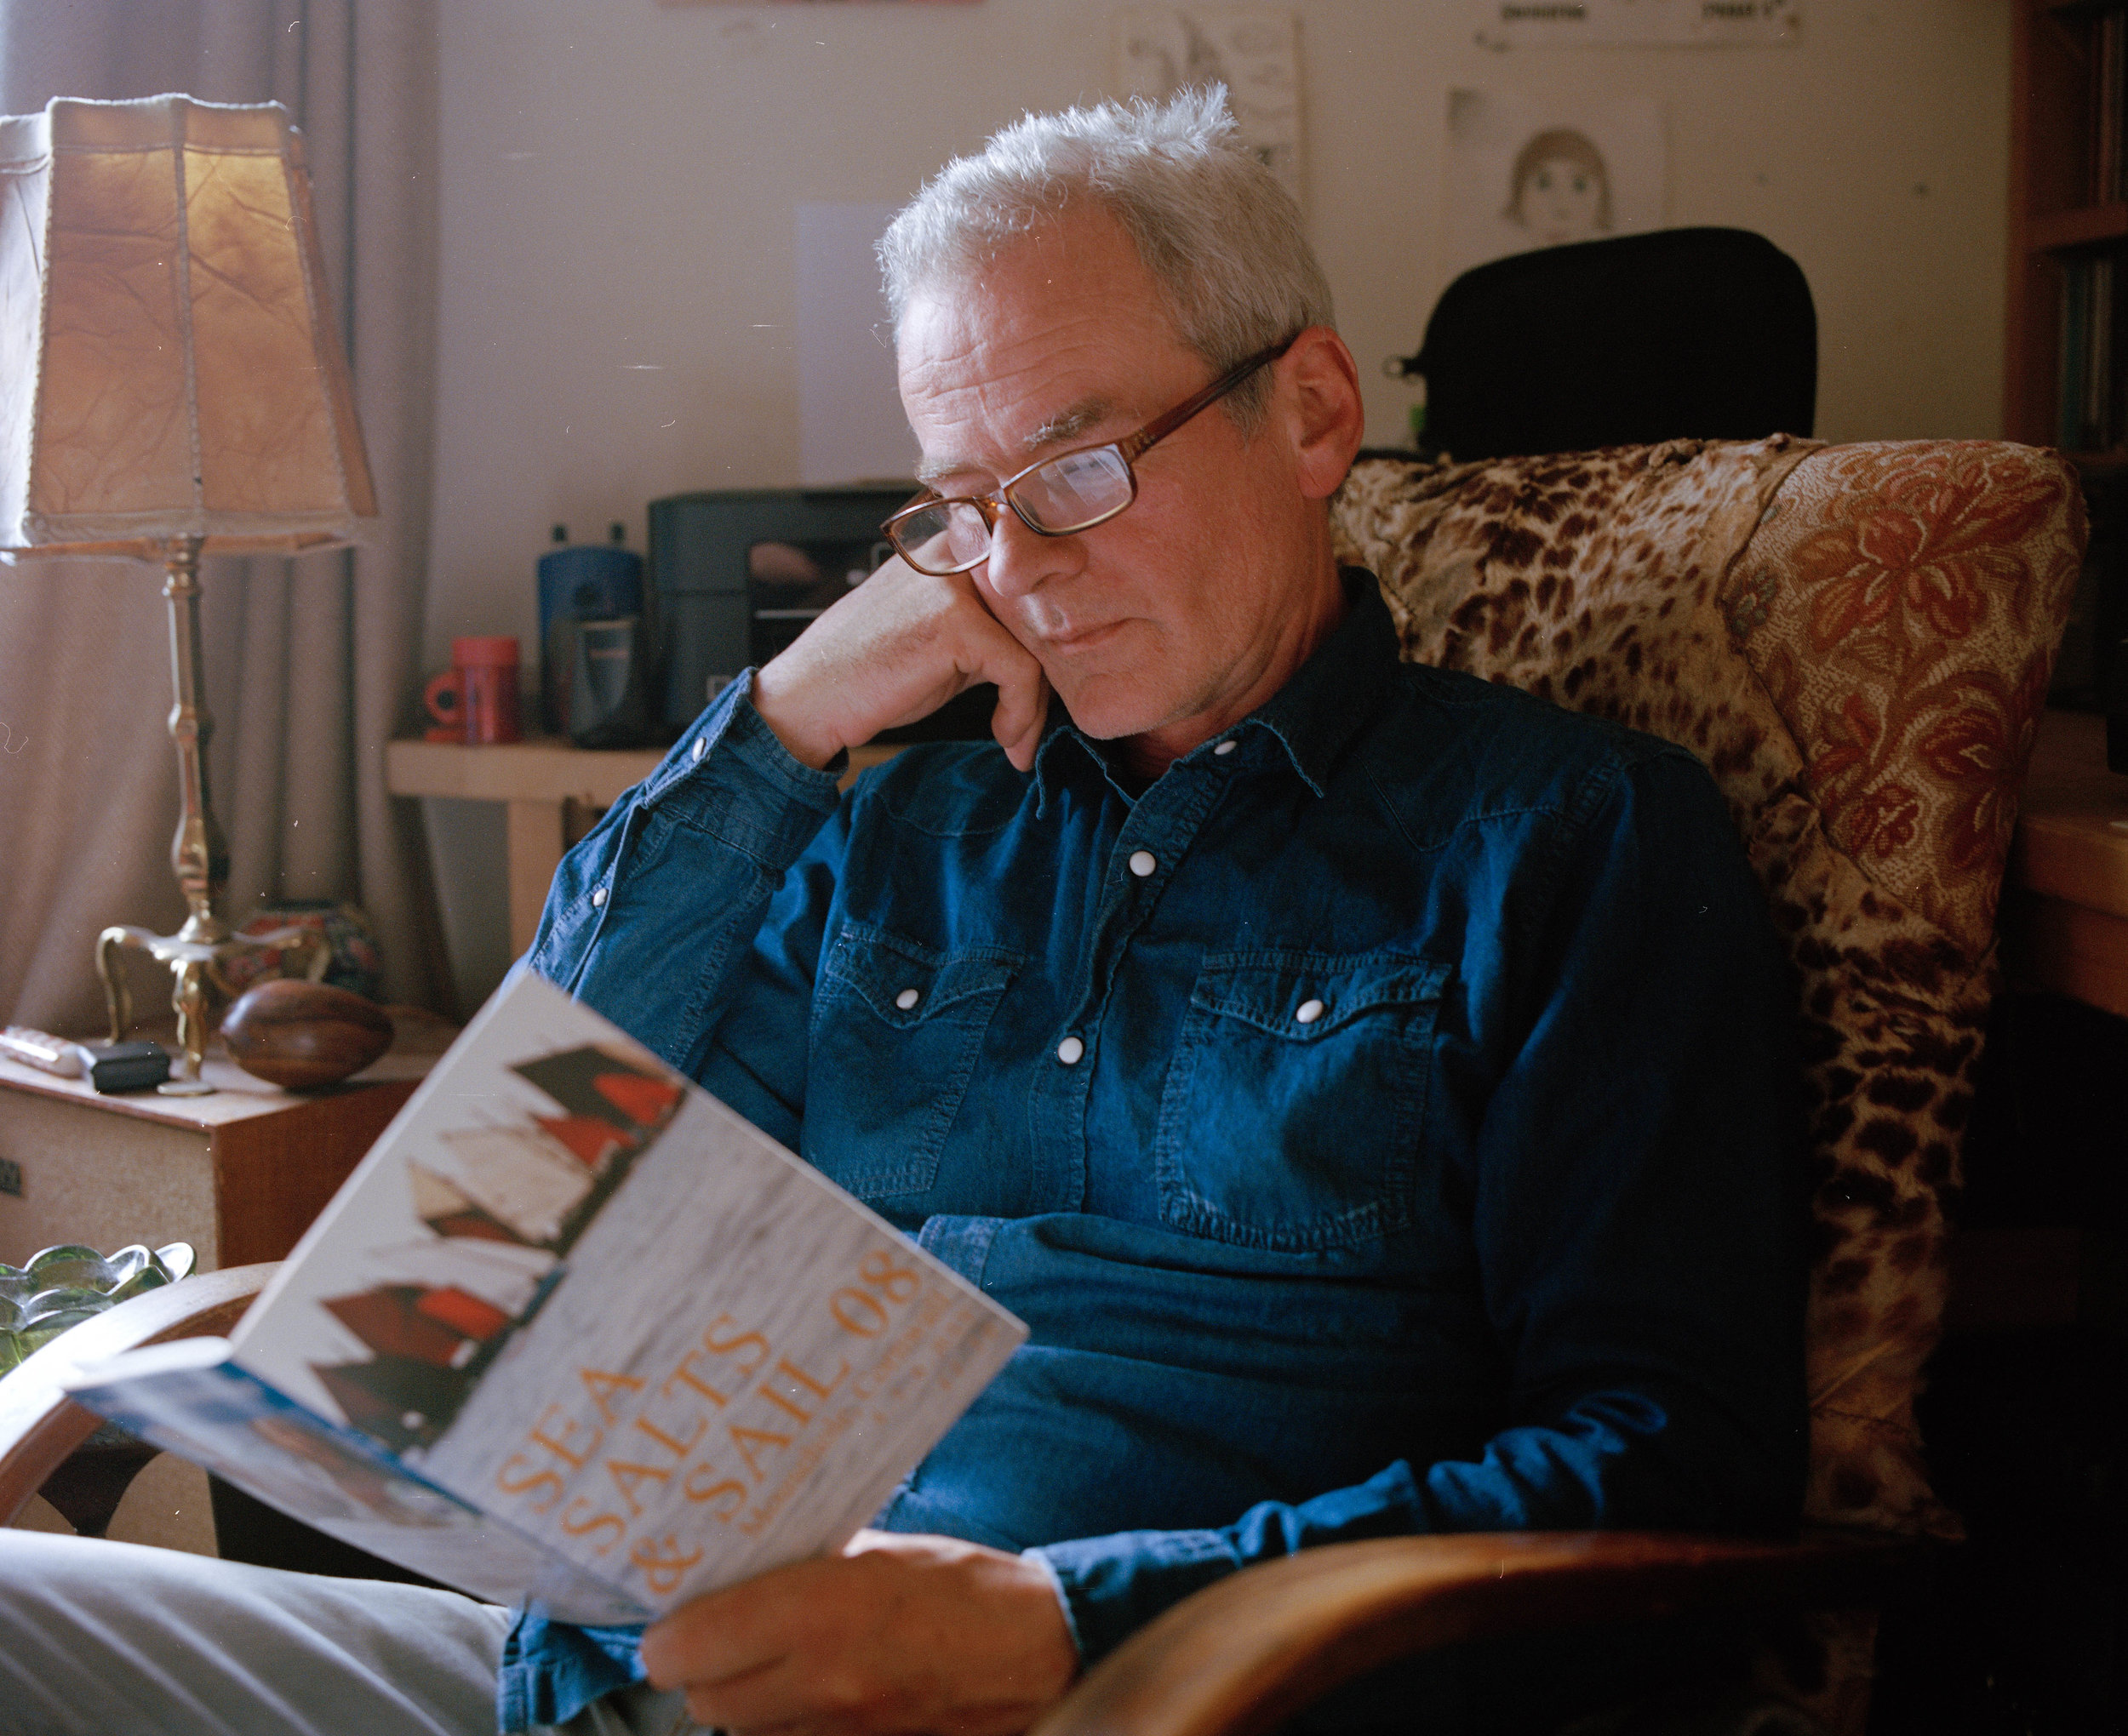 """Neil reading a leaflet in his house. Neil says """" I think that success is having a family around you, you don't need more than that really."""""""